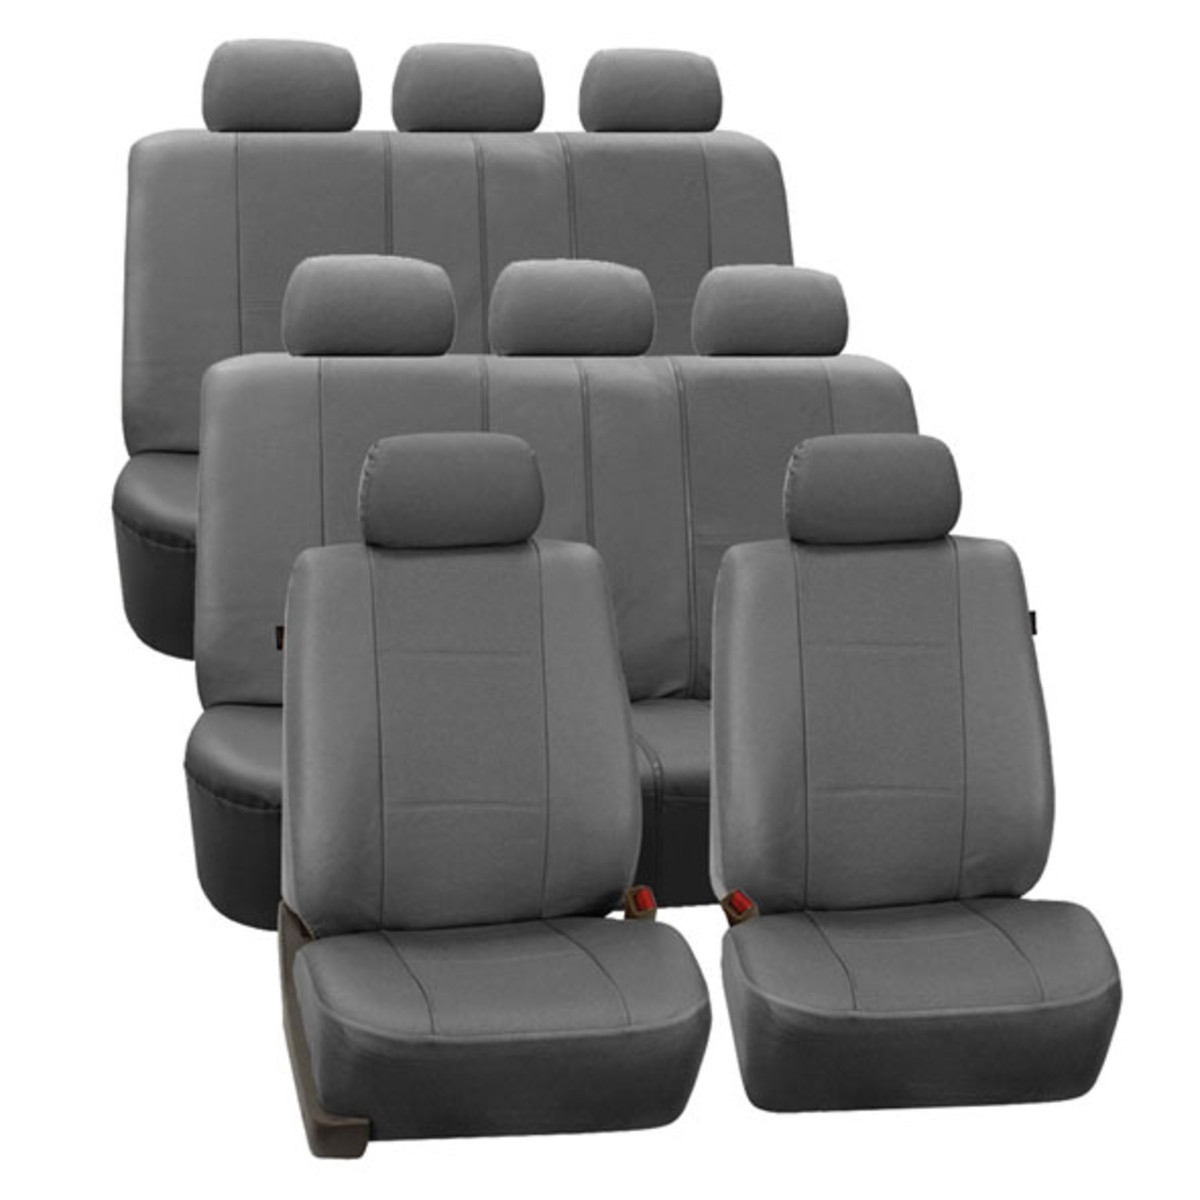 88-PU007128GRAY_gray seat cover 1